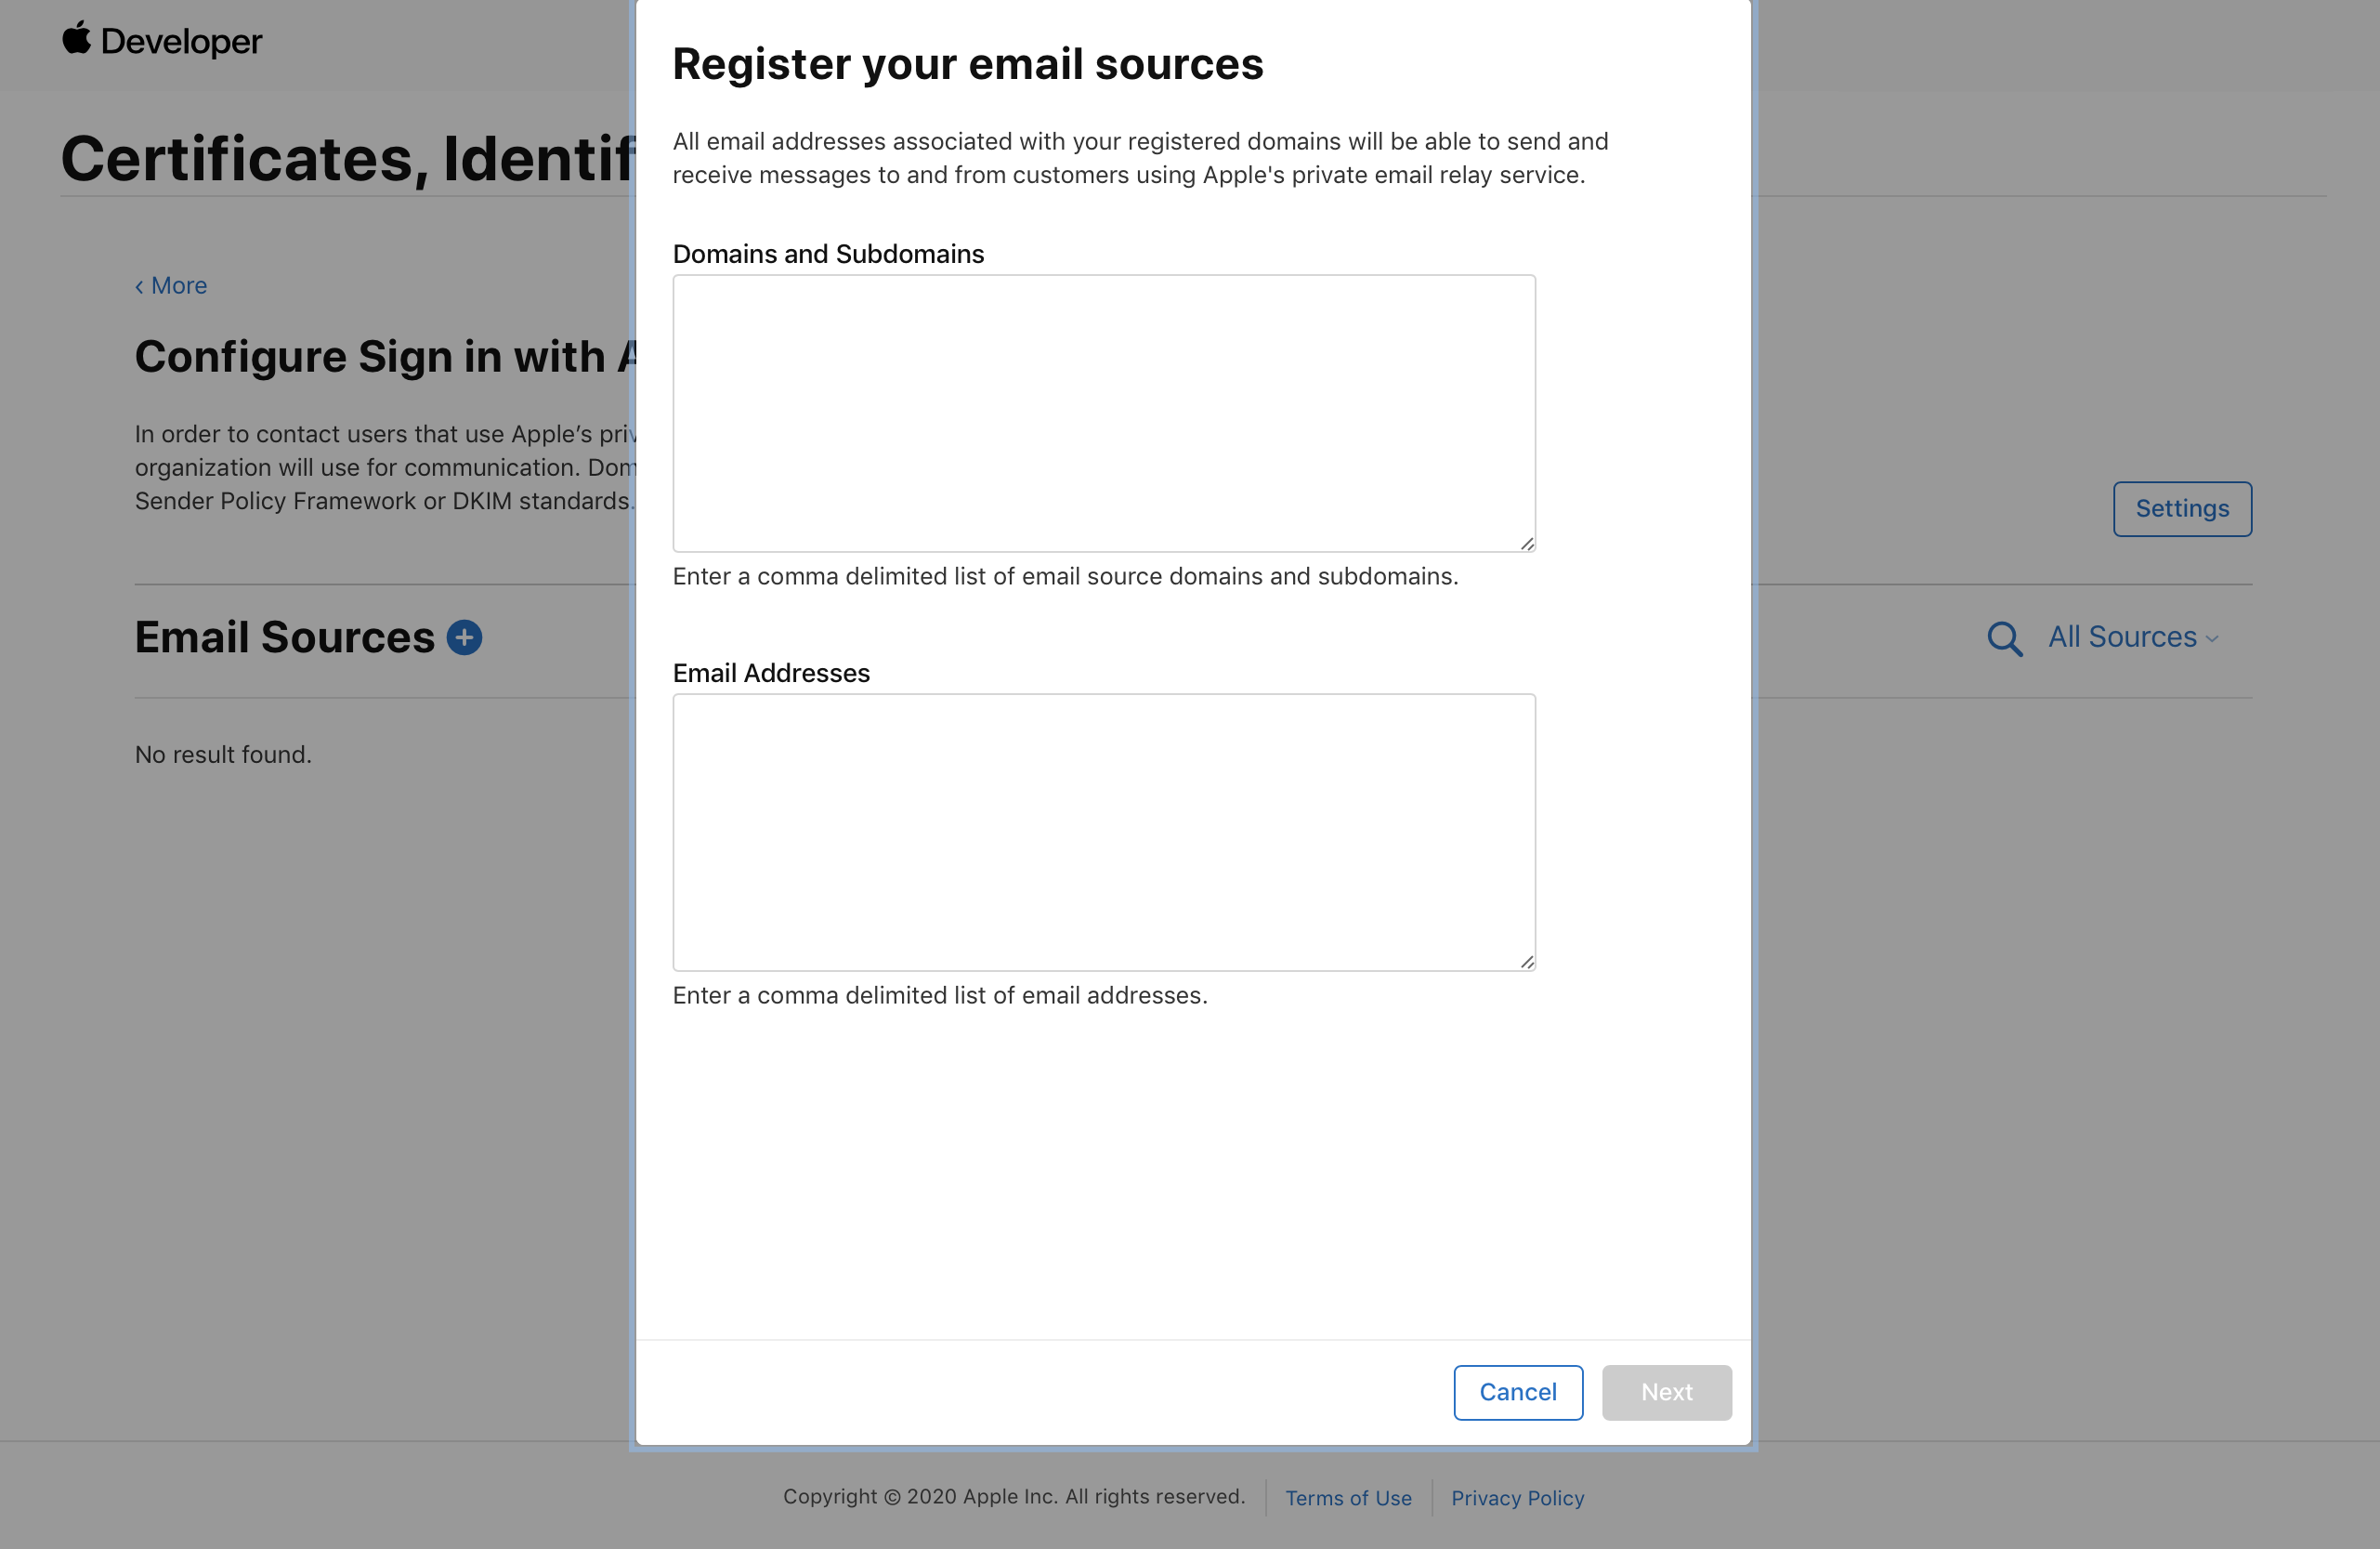 register_your_email_sources.png